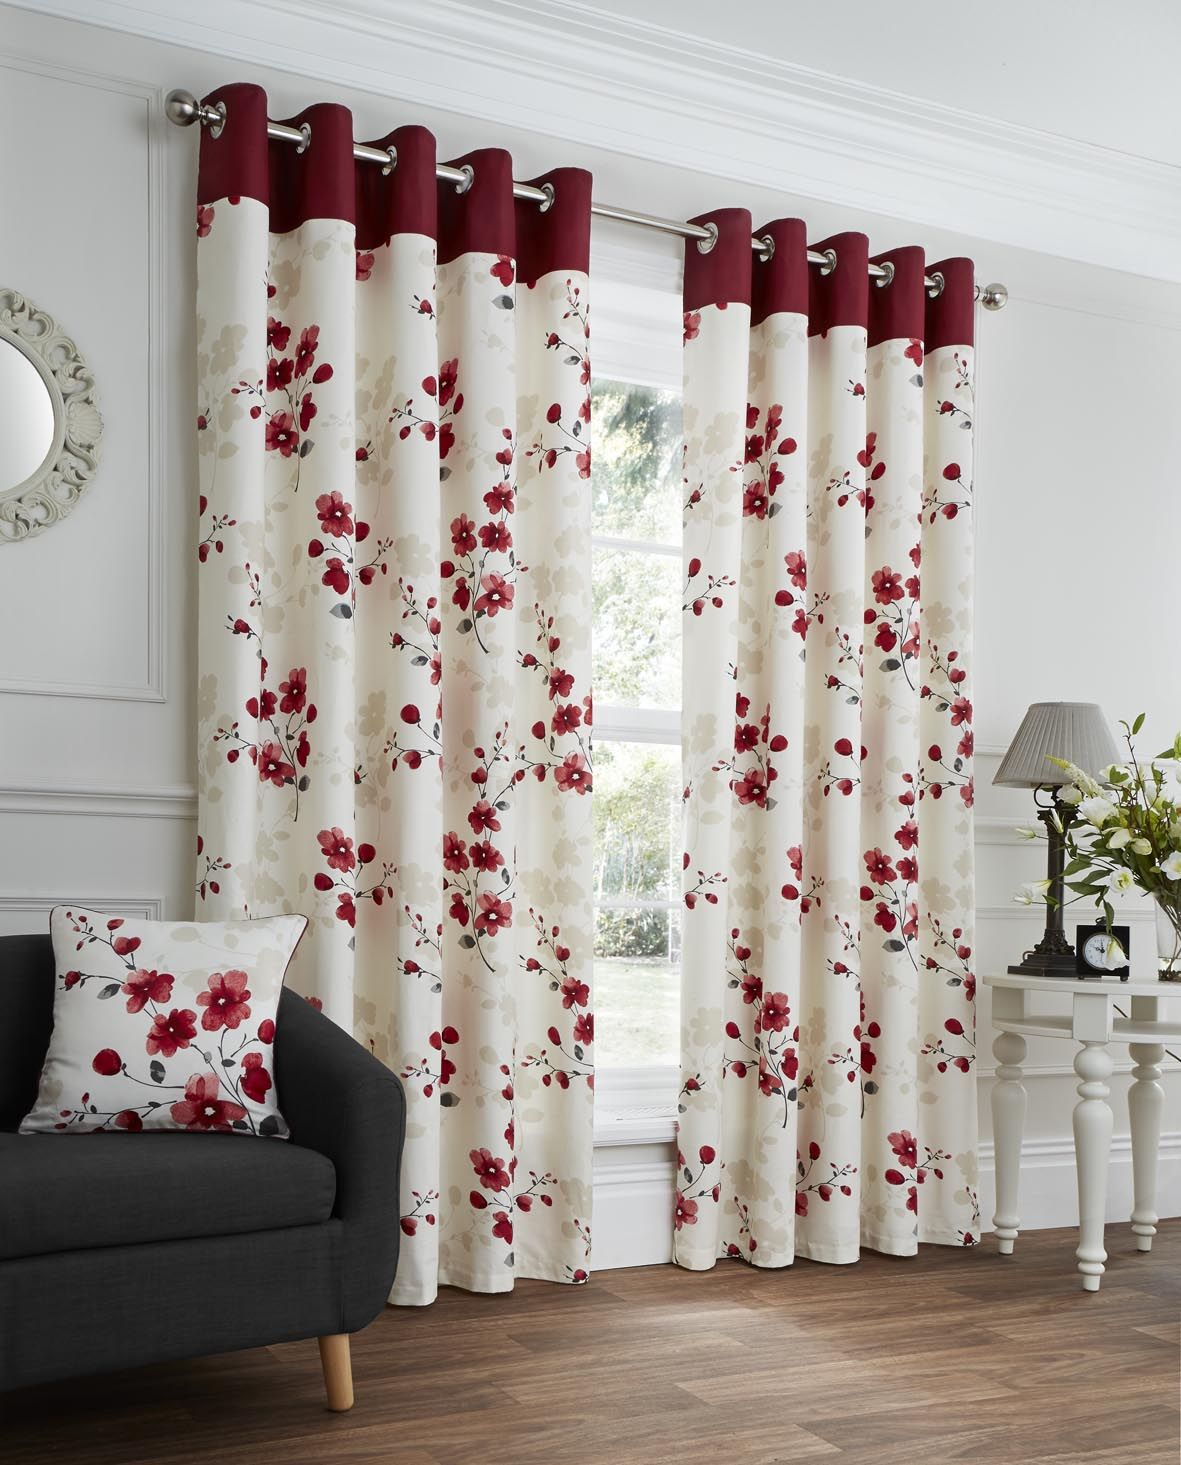 paige red floral ready made eyelet curtains inspiring ideas rh pinterest com